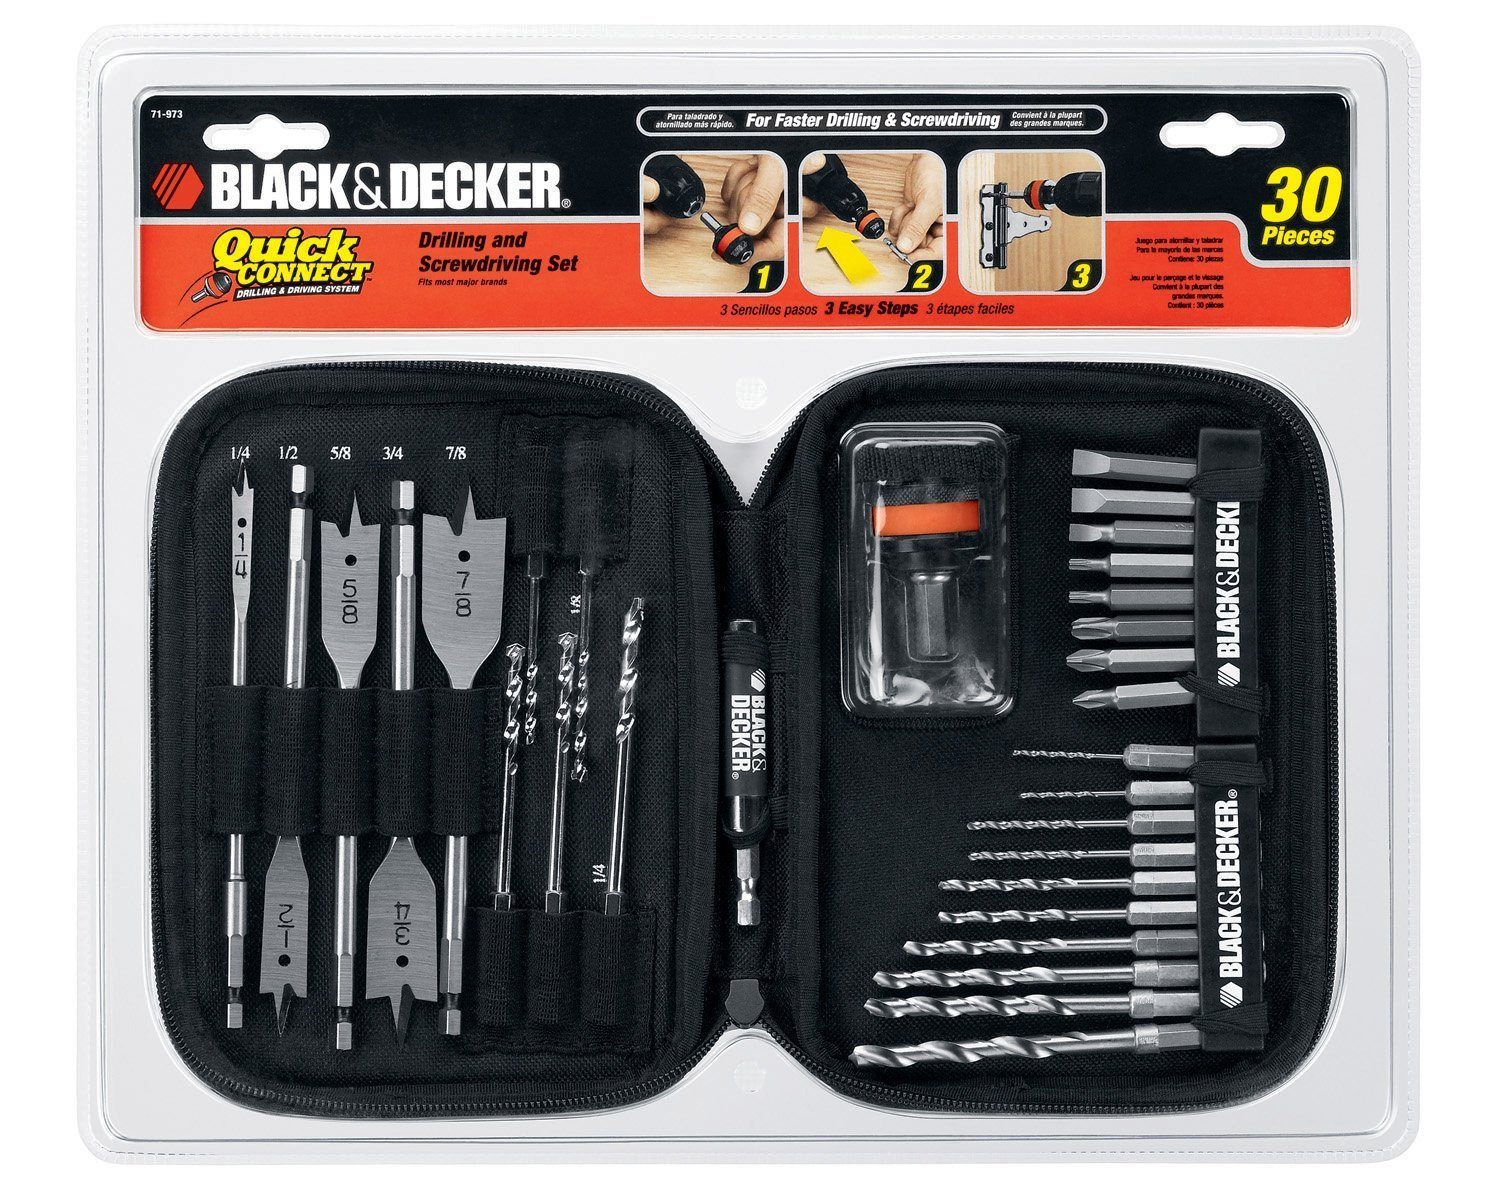 Black & Decker 71-973 Quick Connect 30-Piece Drilling and Screwdriving Set at Sears.com